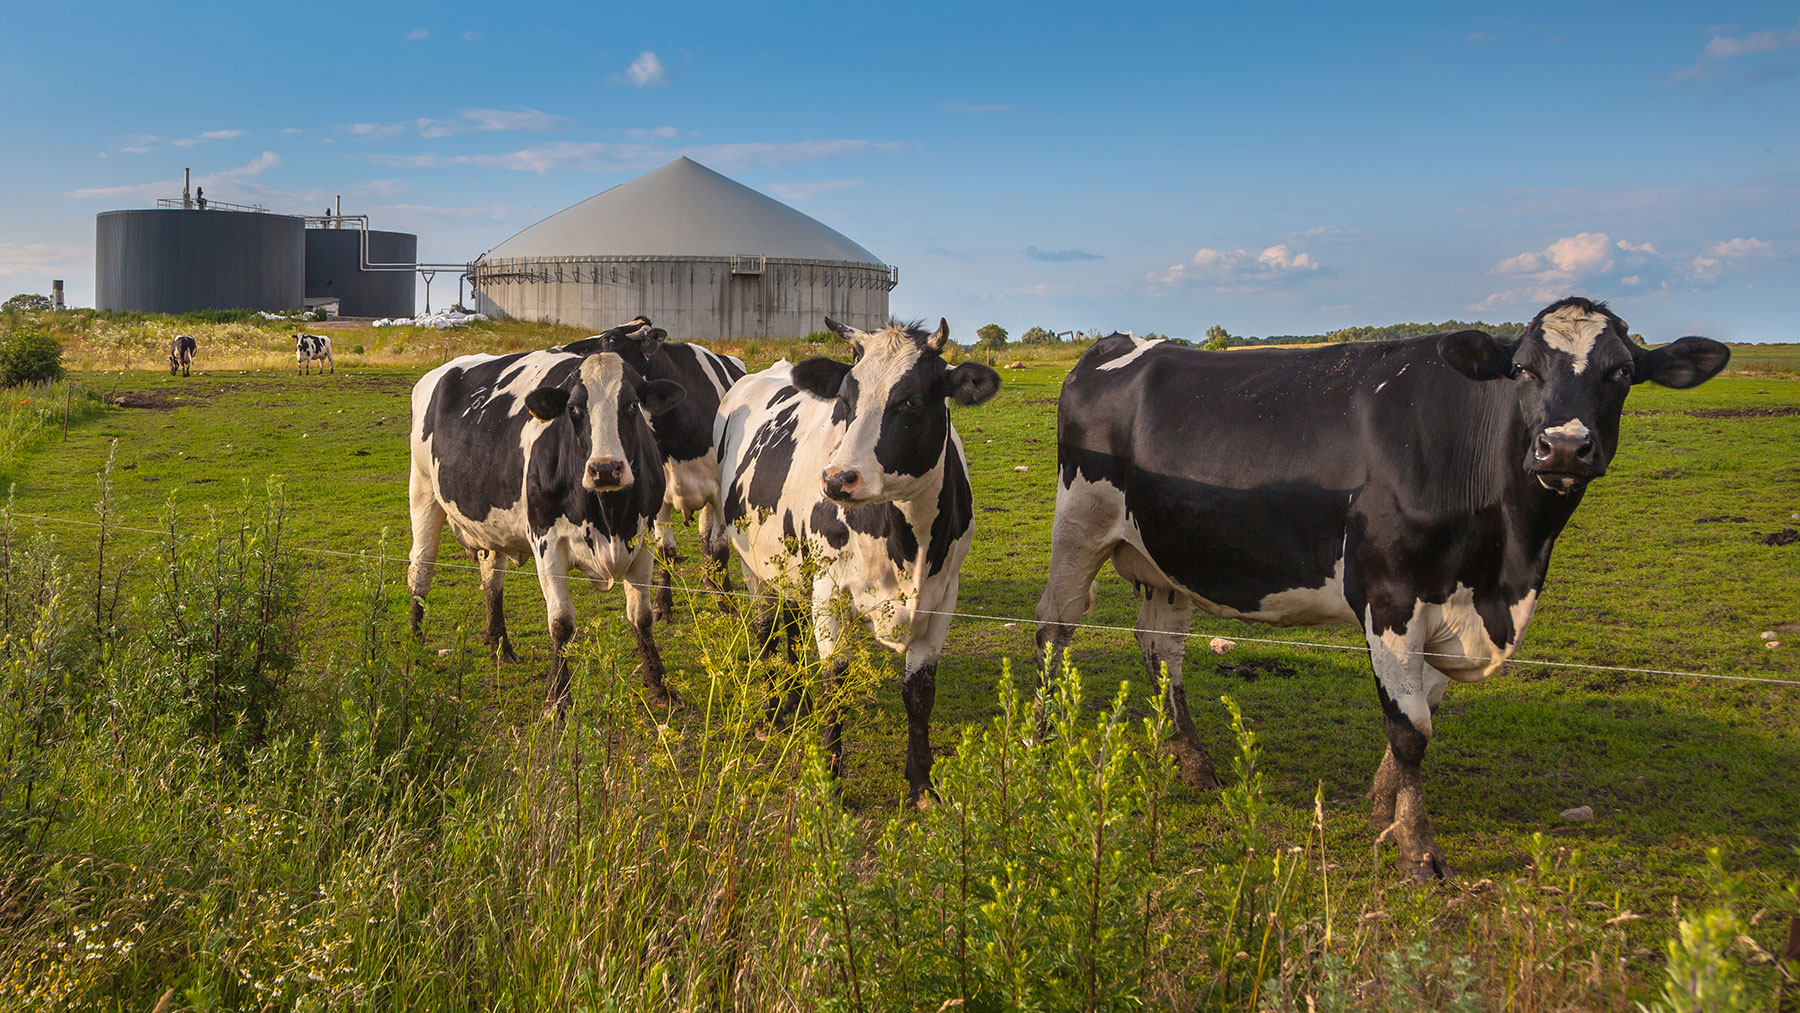 biogas-plant-with-cows-on-a-farm-l